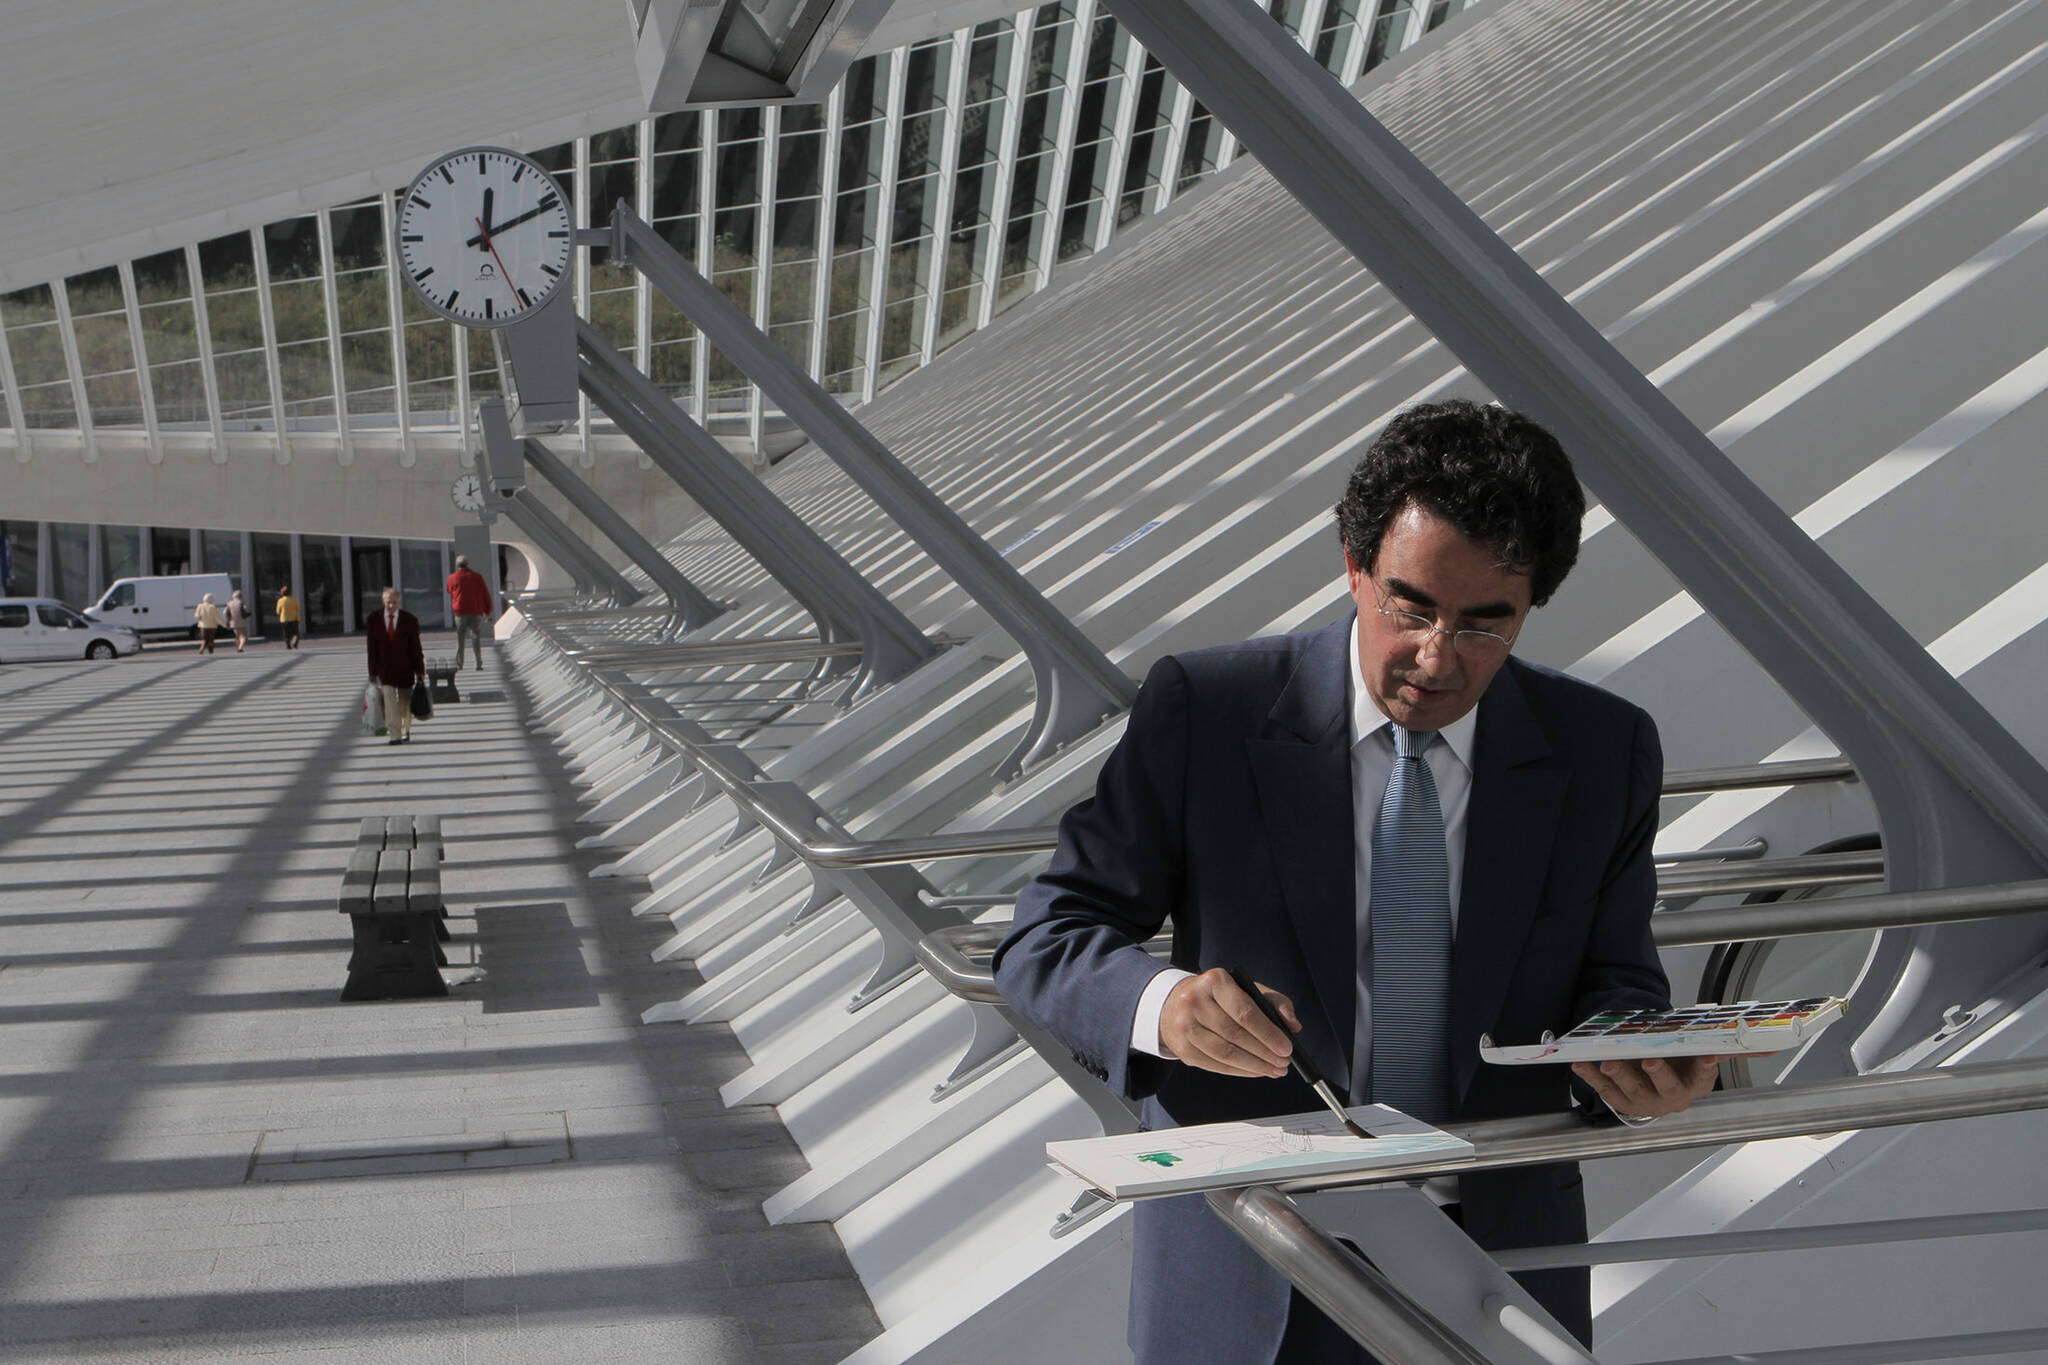 Santiago Calatrava on the Oculus of the Ground Zero area rebuilding project for the Rising: Rebuilding Ground Zero documentary Co-produced by Danny Forster and Steven Spielberg about the rebuilding of the World Trade Center site in the wake of 9/11.